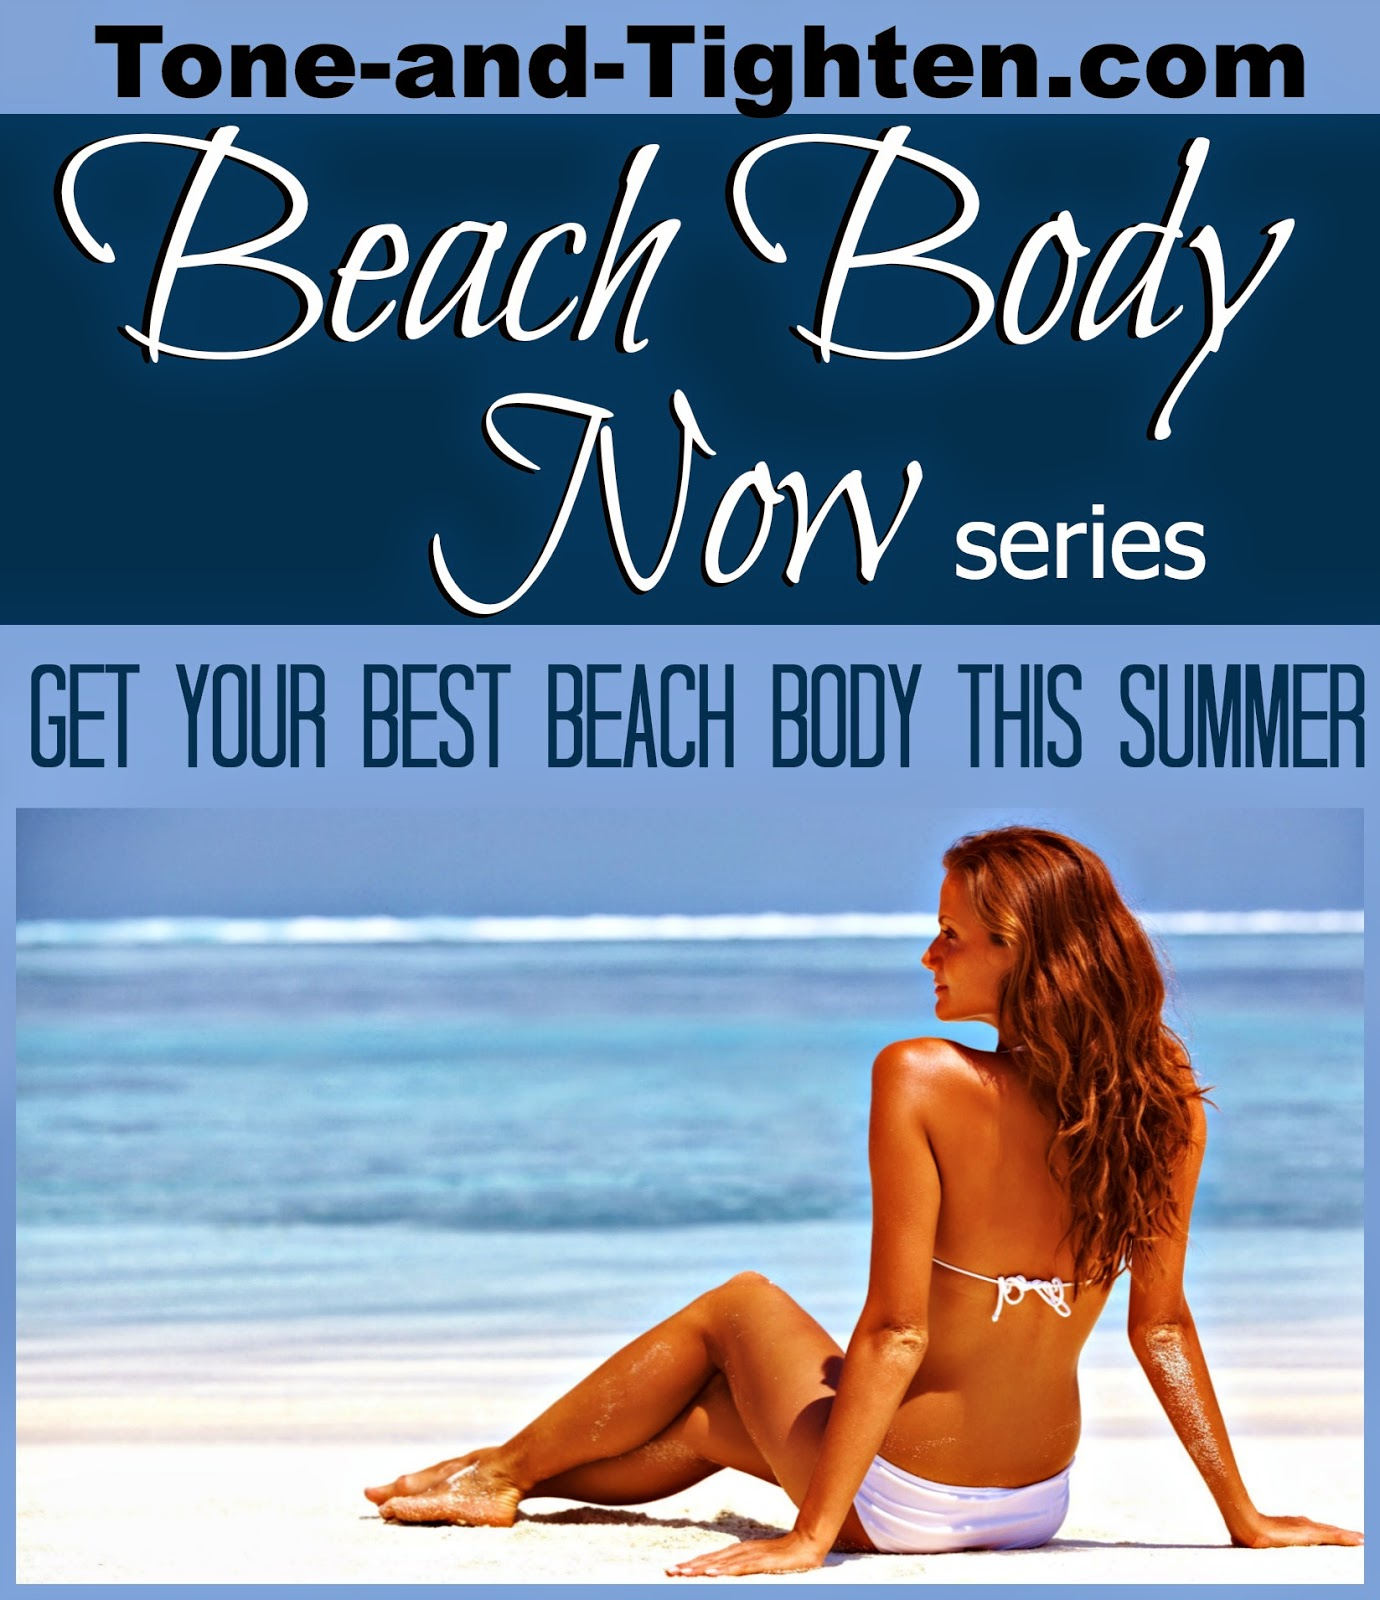 http://tone-and-tighten.com/2014/04/beach-body-now-week-3-get-the-body-of-your-dreams-this-summer.html